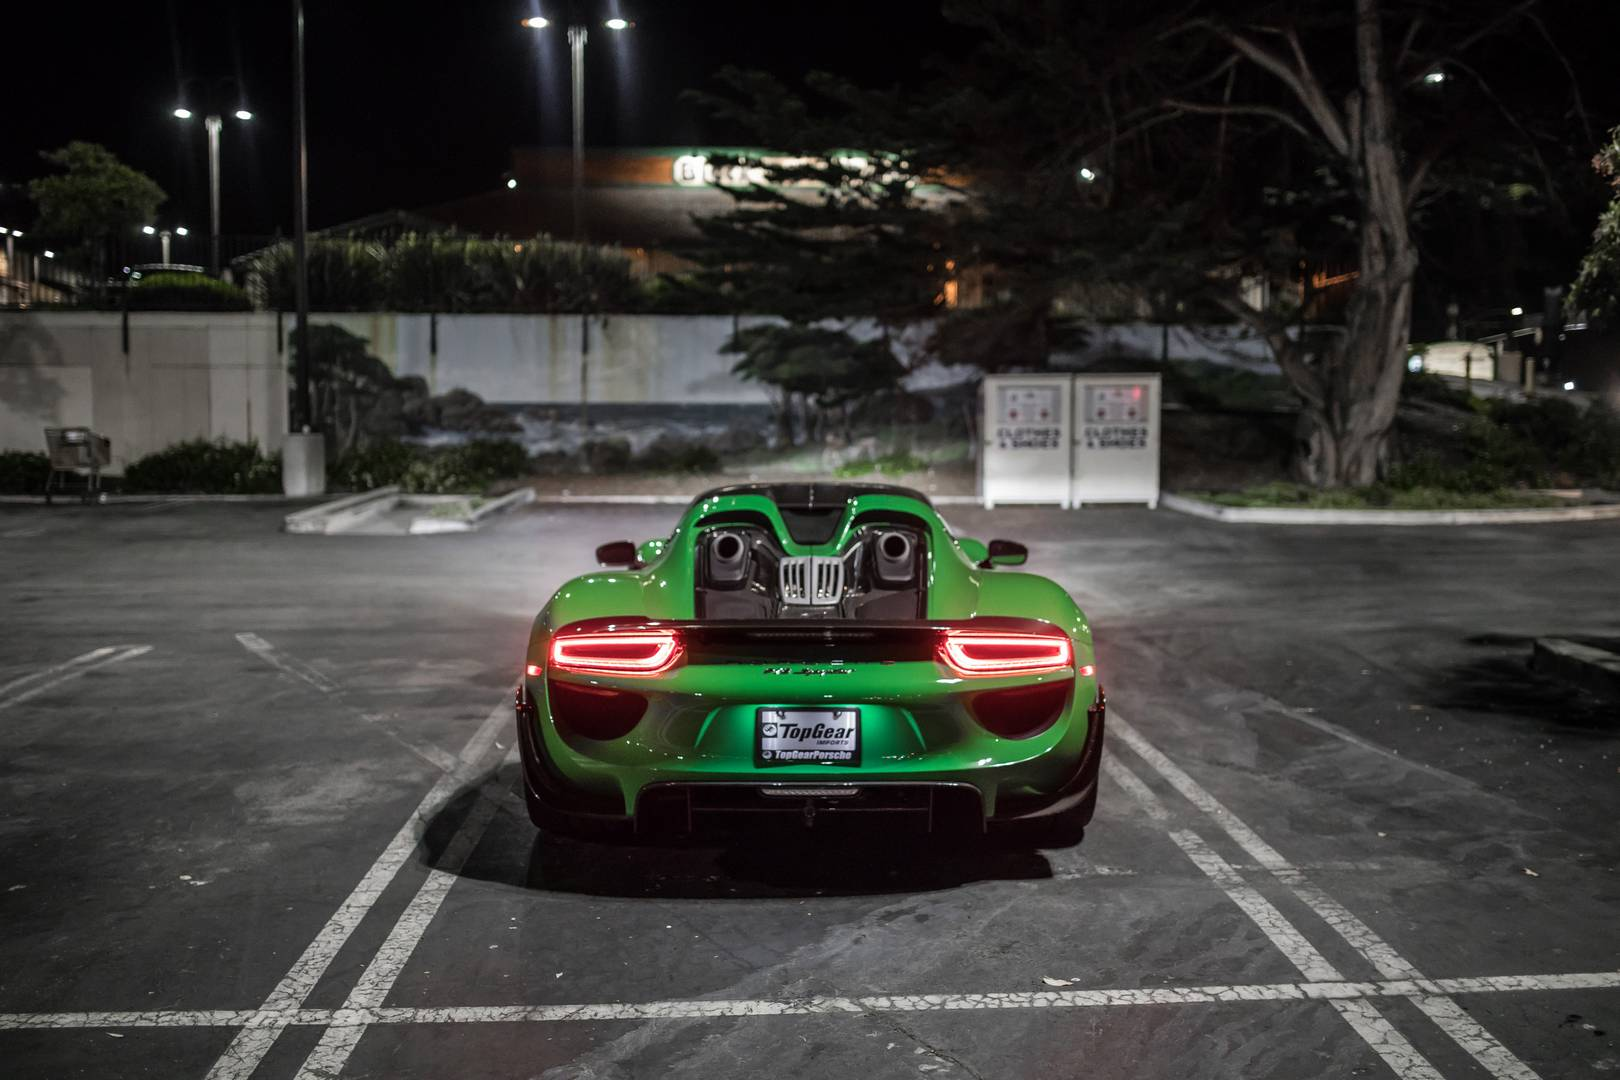 porsche 918 koenigsegg html with Nhung Hinh Anh Dep Ve Dan Sieu Xe Trieu Usd Tai Tuan Le Xe Monterey 2017 on Porsche 918 spyder weissach package martini racing 4k Wallpapers furthermore 11062 3 additionally This Red 918 Spyder Is As Beautiful As as well 263314 moreover Nhung Hinh Anh Dep Ve Dan Sieu Xe Trieu Usd Tai Tuan Le Xe Monterey 2017.